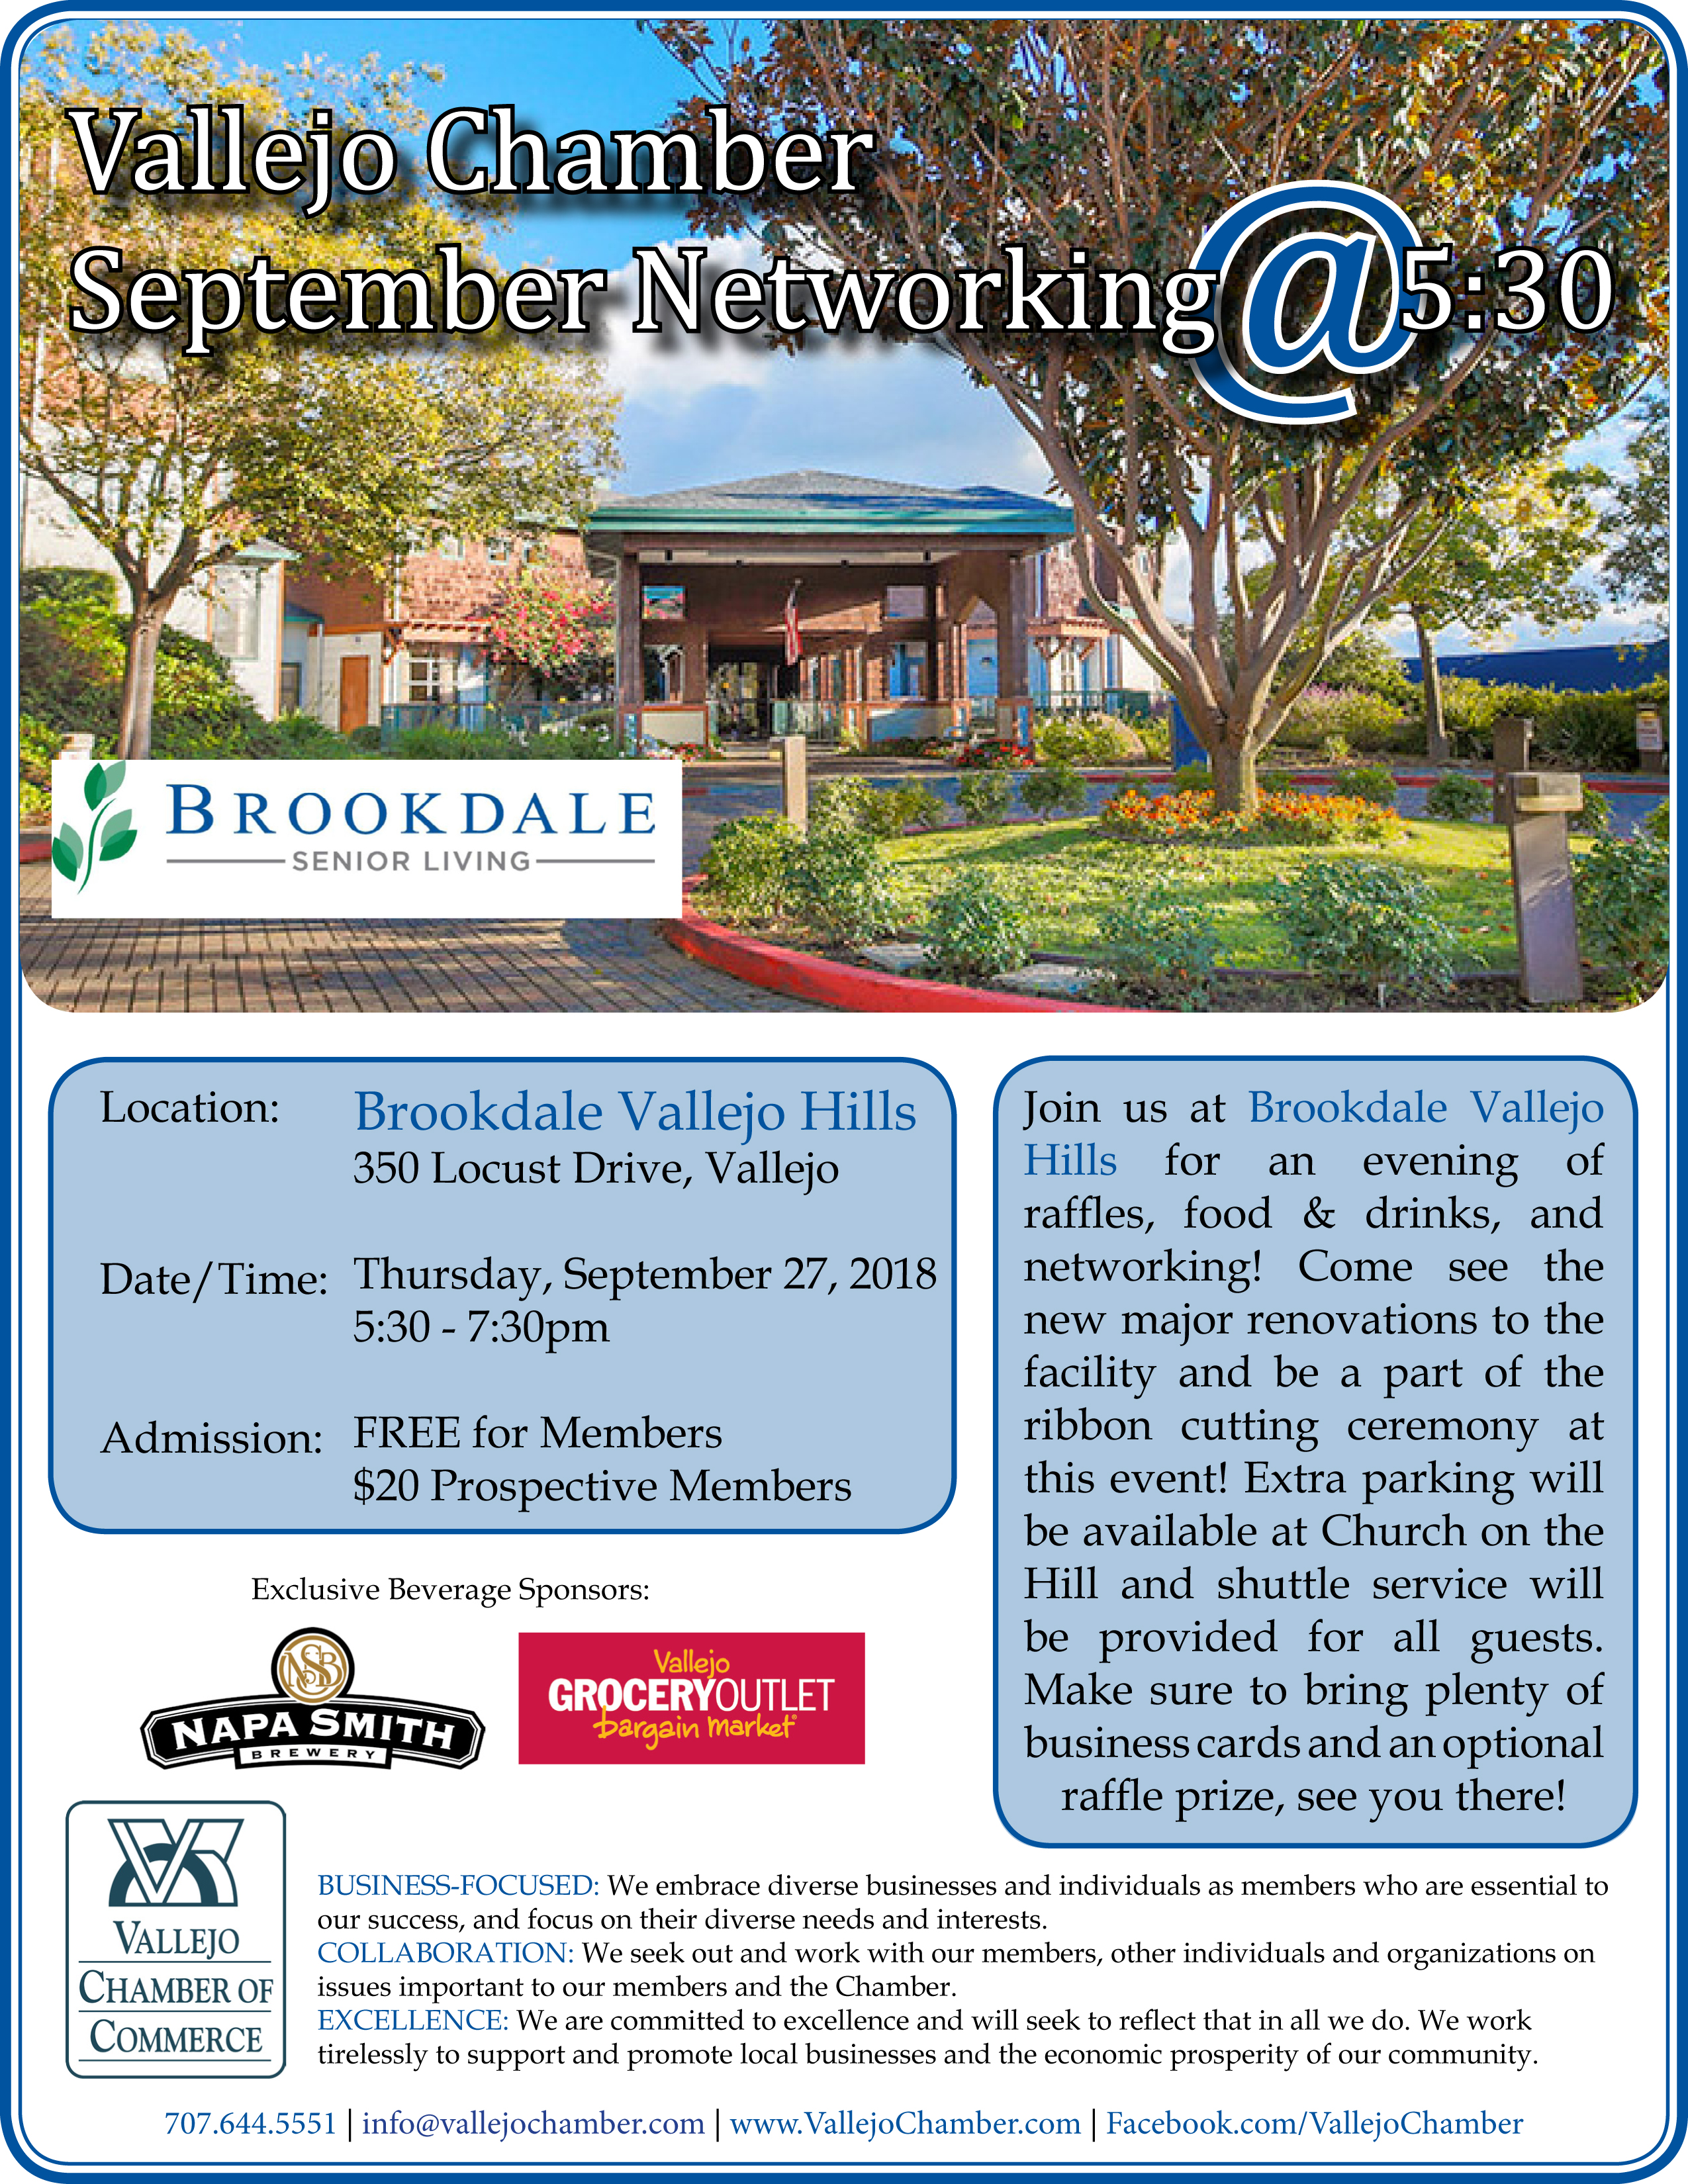 Vallejo-Chamber-September-Networking-2018-Brookdale-Vallejo-Hills